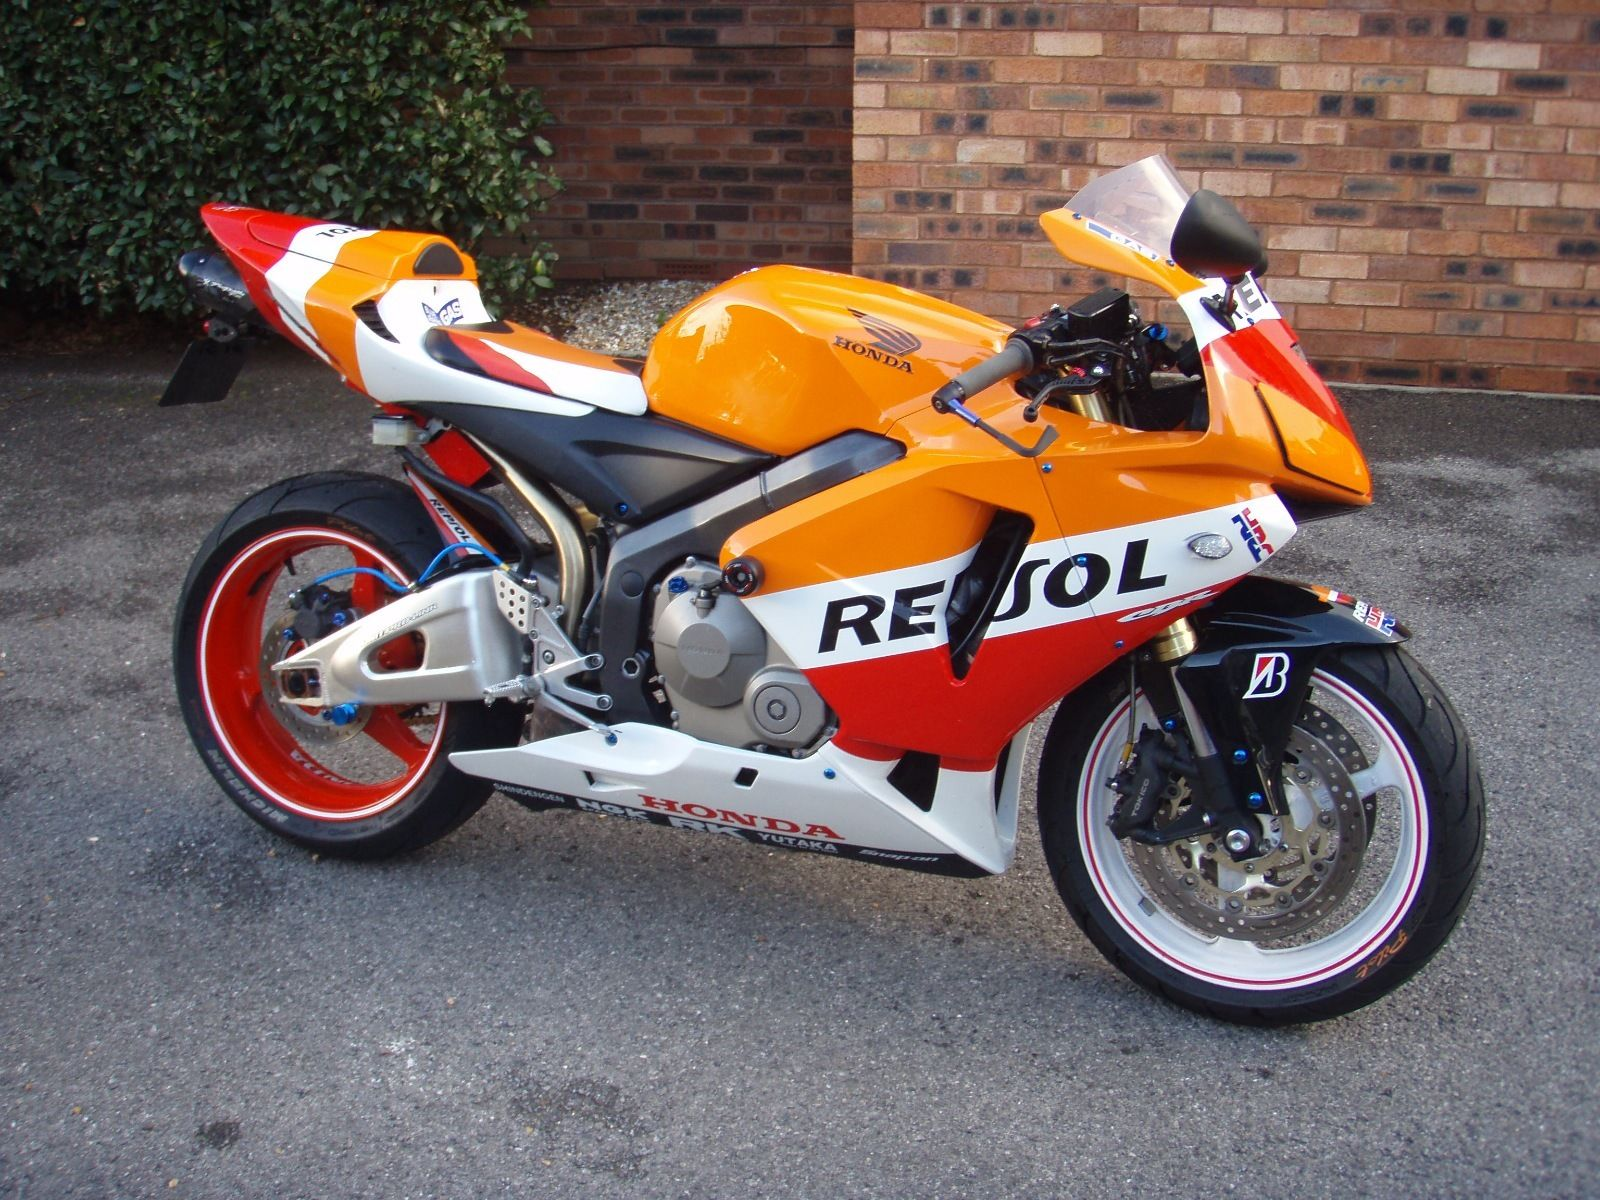 2005 honda cbr 600 rr 5 repsol replica. Black Bedroom Furniture Sets. Home Design Ideas